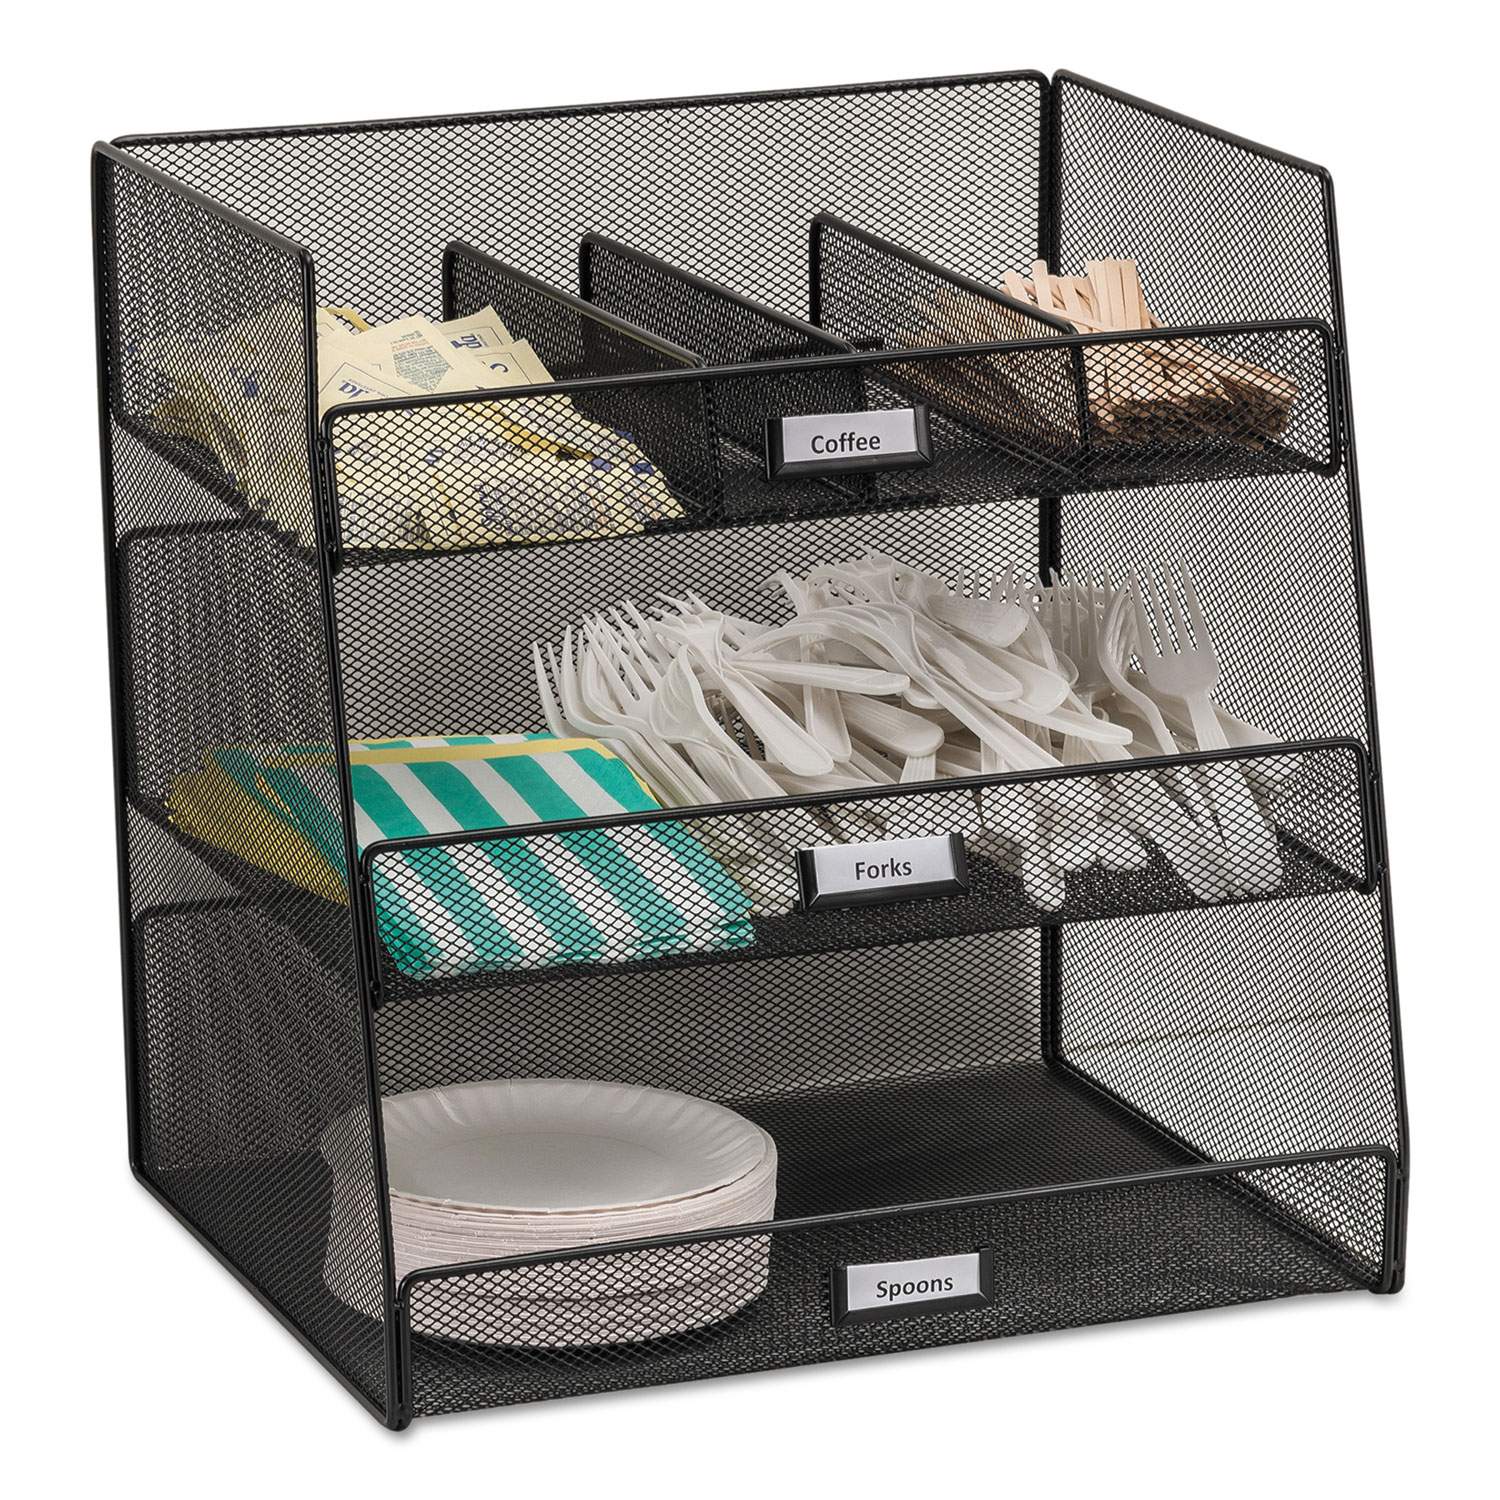 Onyx Breakroom Organizers, 3 Compartments,14.625×11.75×15, Steel Mesh, Black